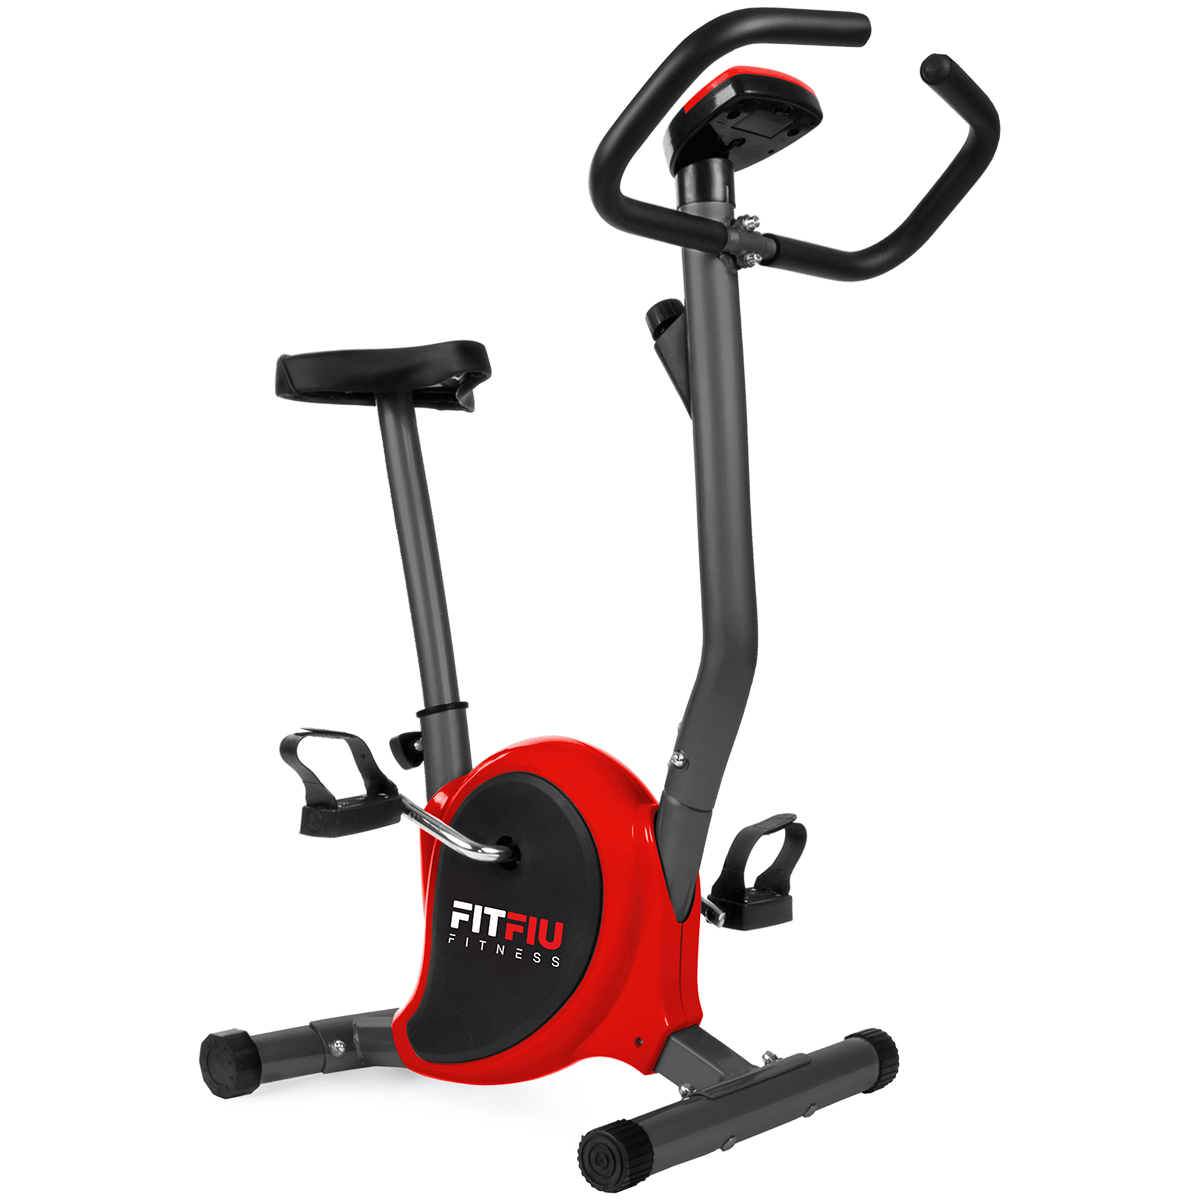 Bicicleta estatica FITFIU ultracompacta regulable 5kg